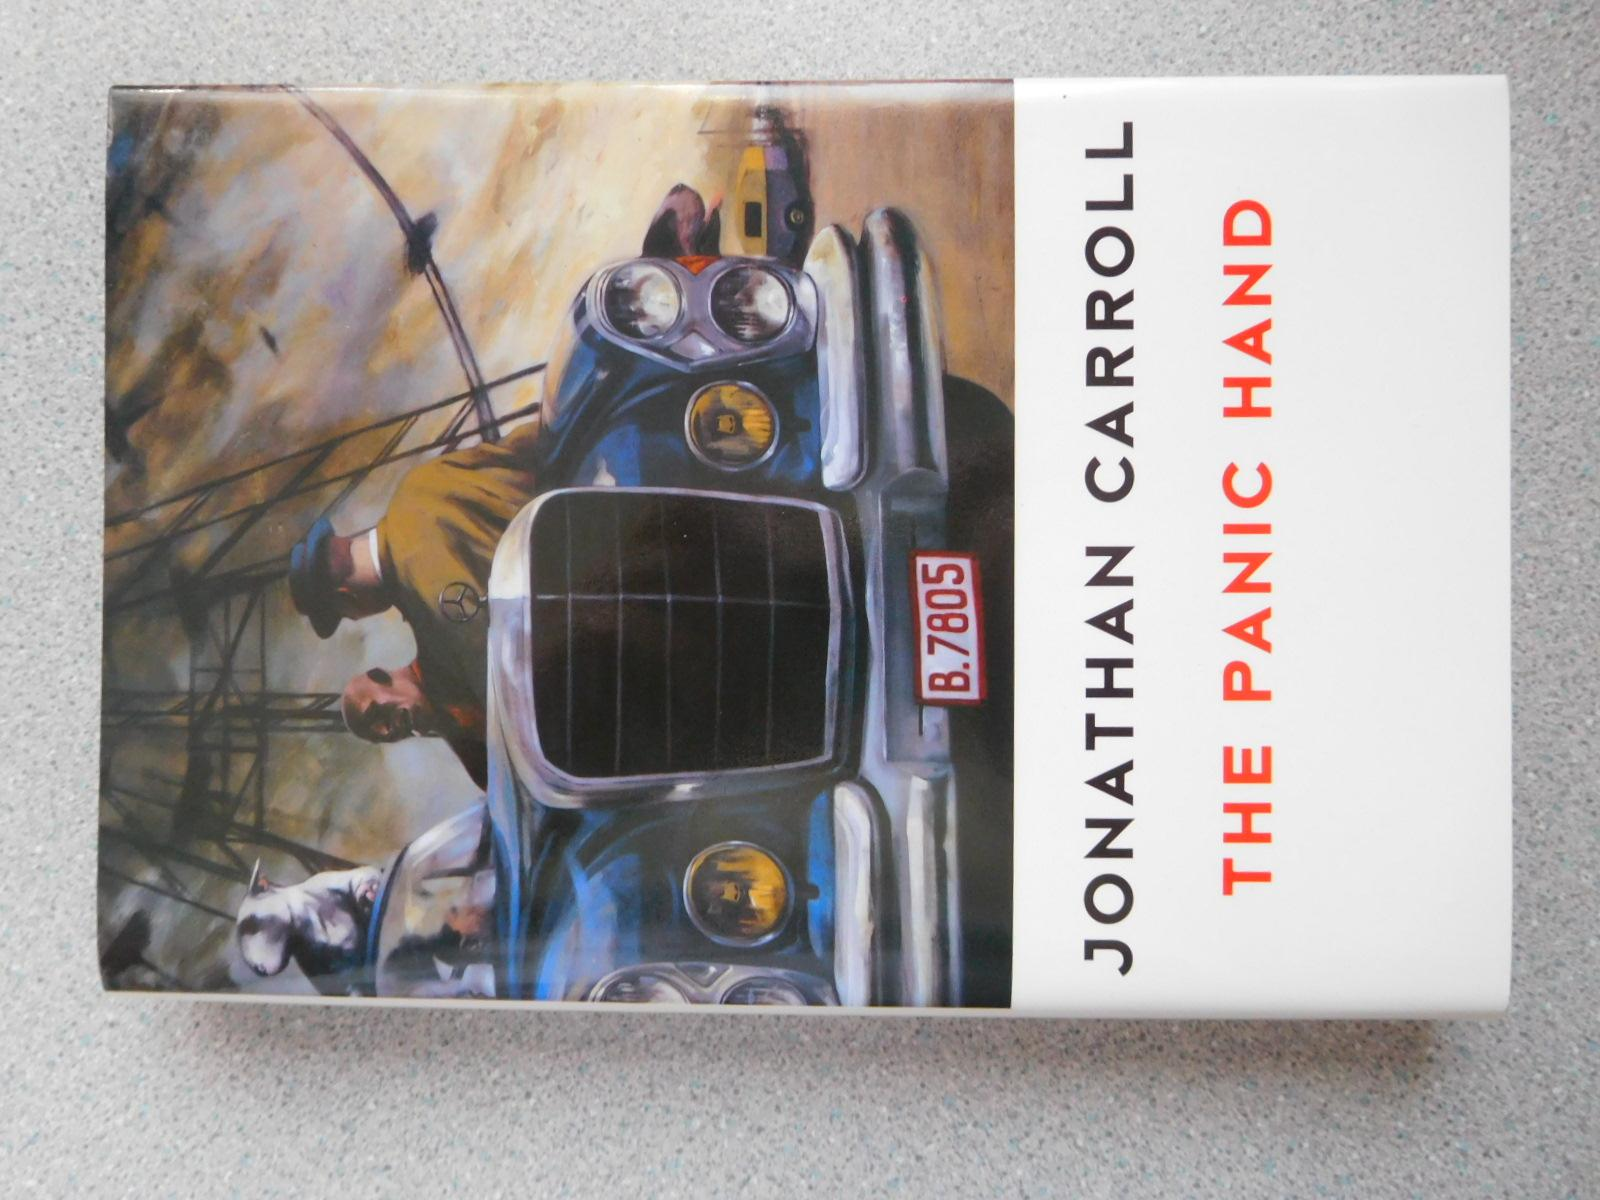 THE_PANIC_HAND_Pristine_Signed_First_Edition_Carroll_Jonathan_Comme_Neuf_Couverture_rigide